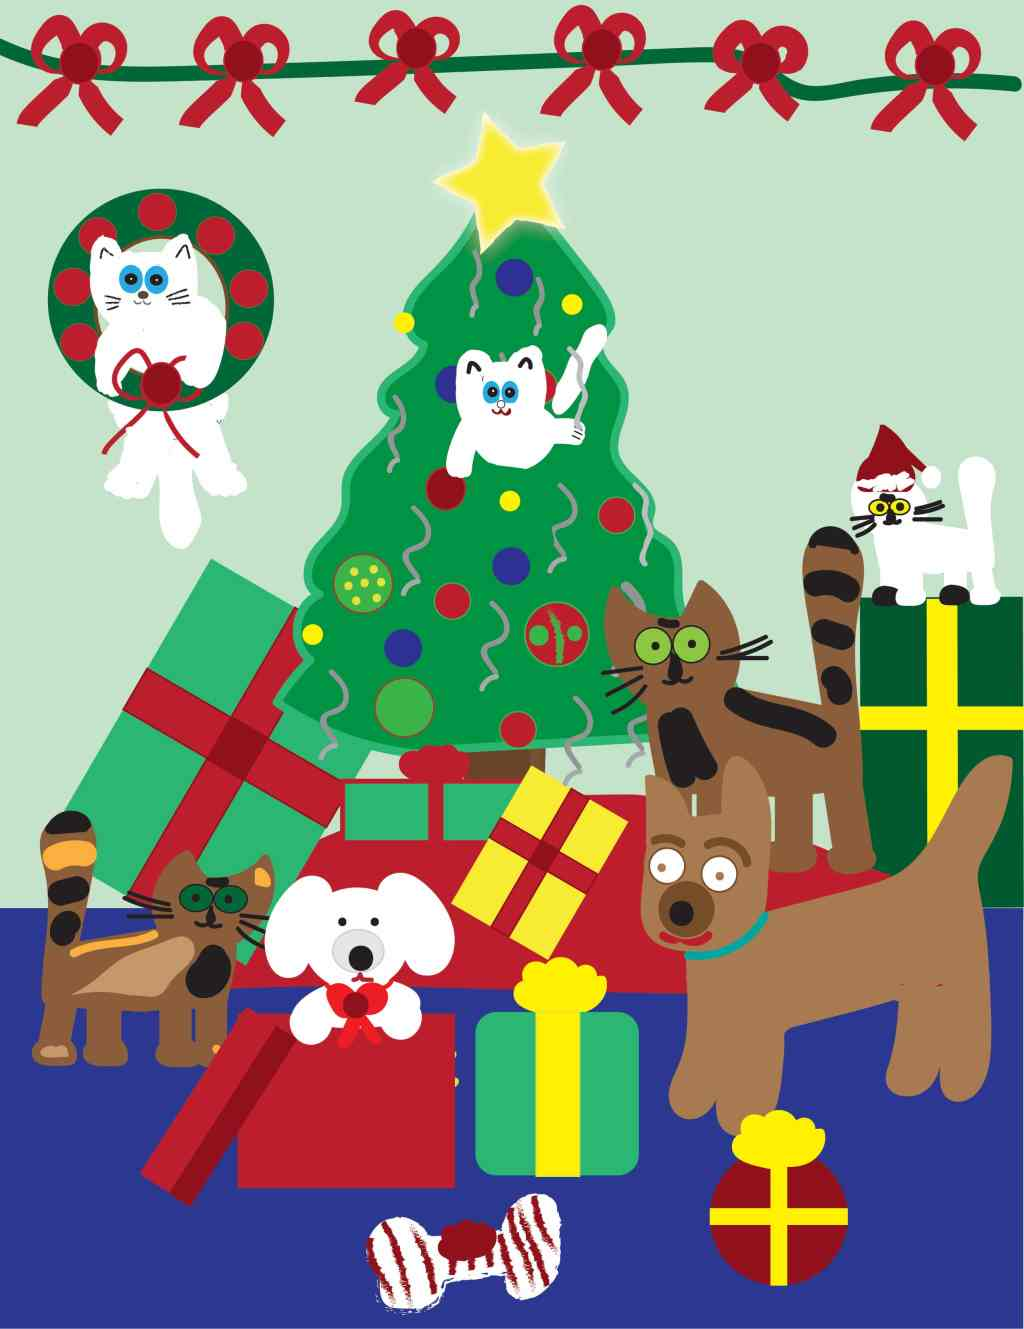 cats and dogs at Christmas illustration